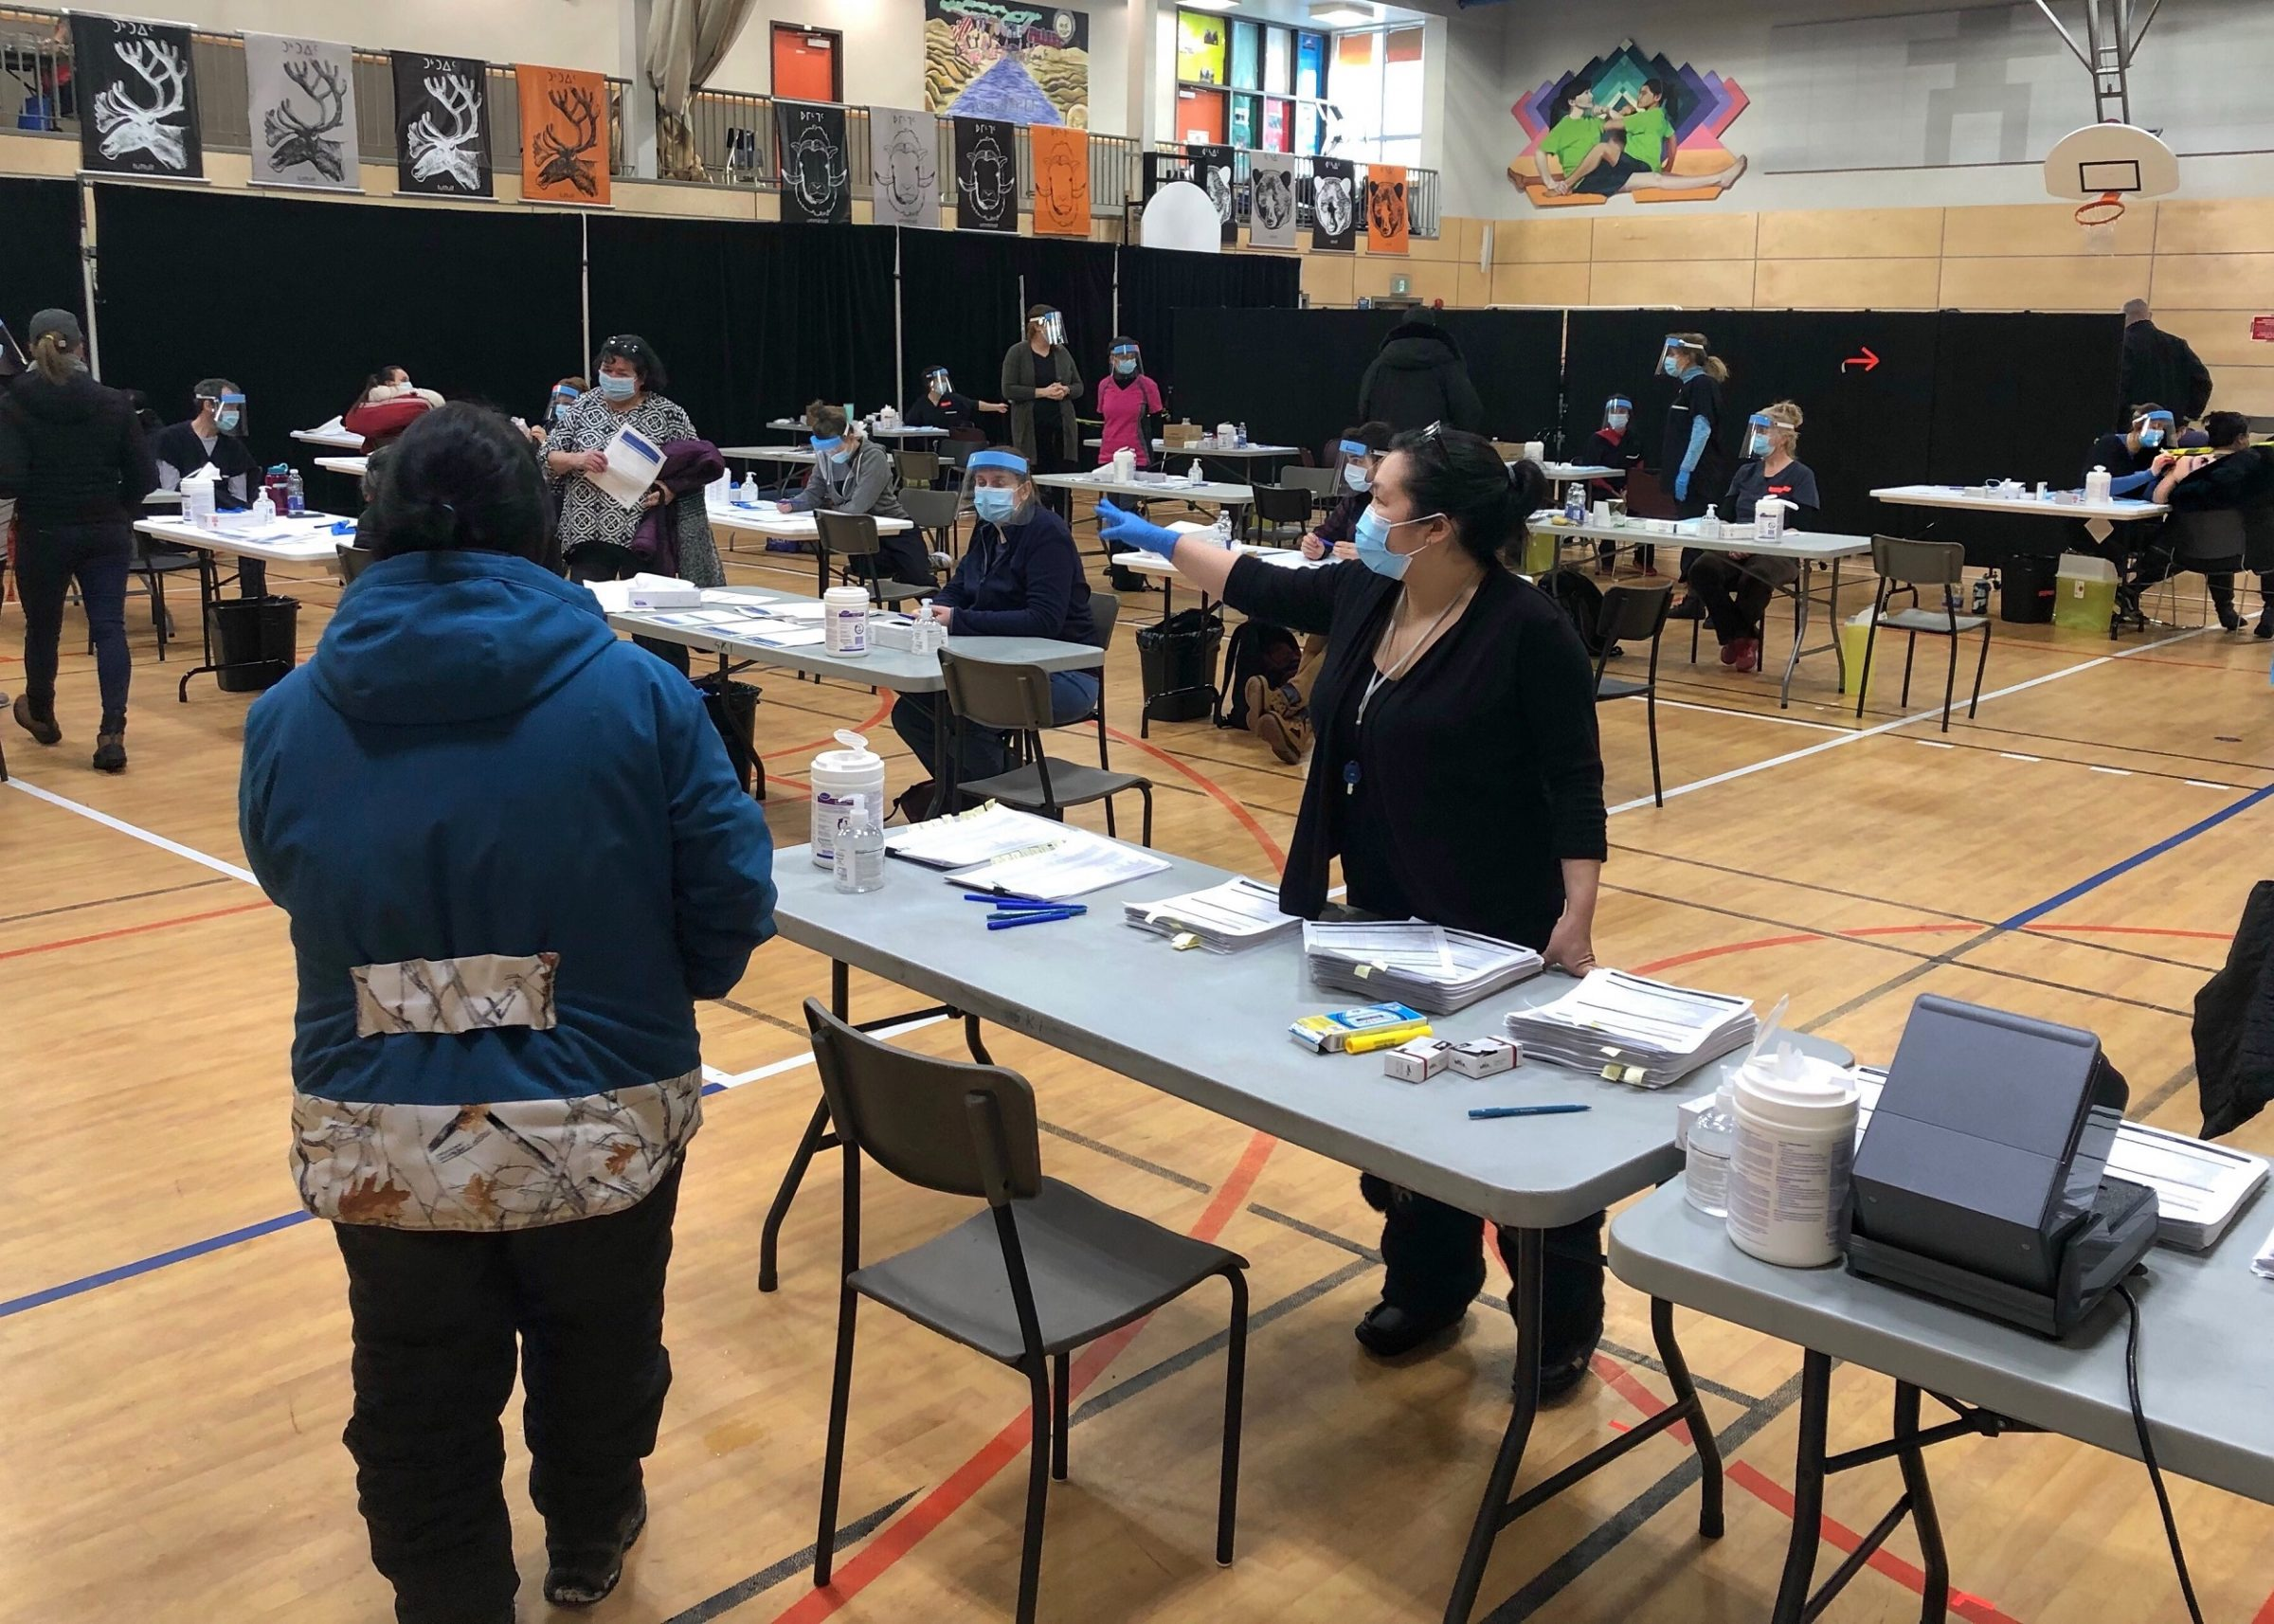 Health-care workers welcome Kuujjuaq residents to the community's first general vaccination clinic in February. Regional health authorities are now rolling out a second round of immunization clinics. (Photo by Isabelle Dubois)